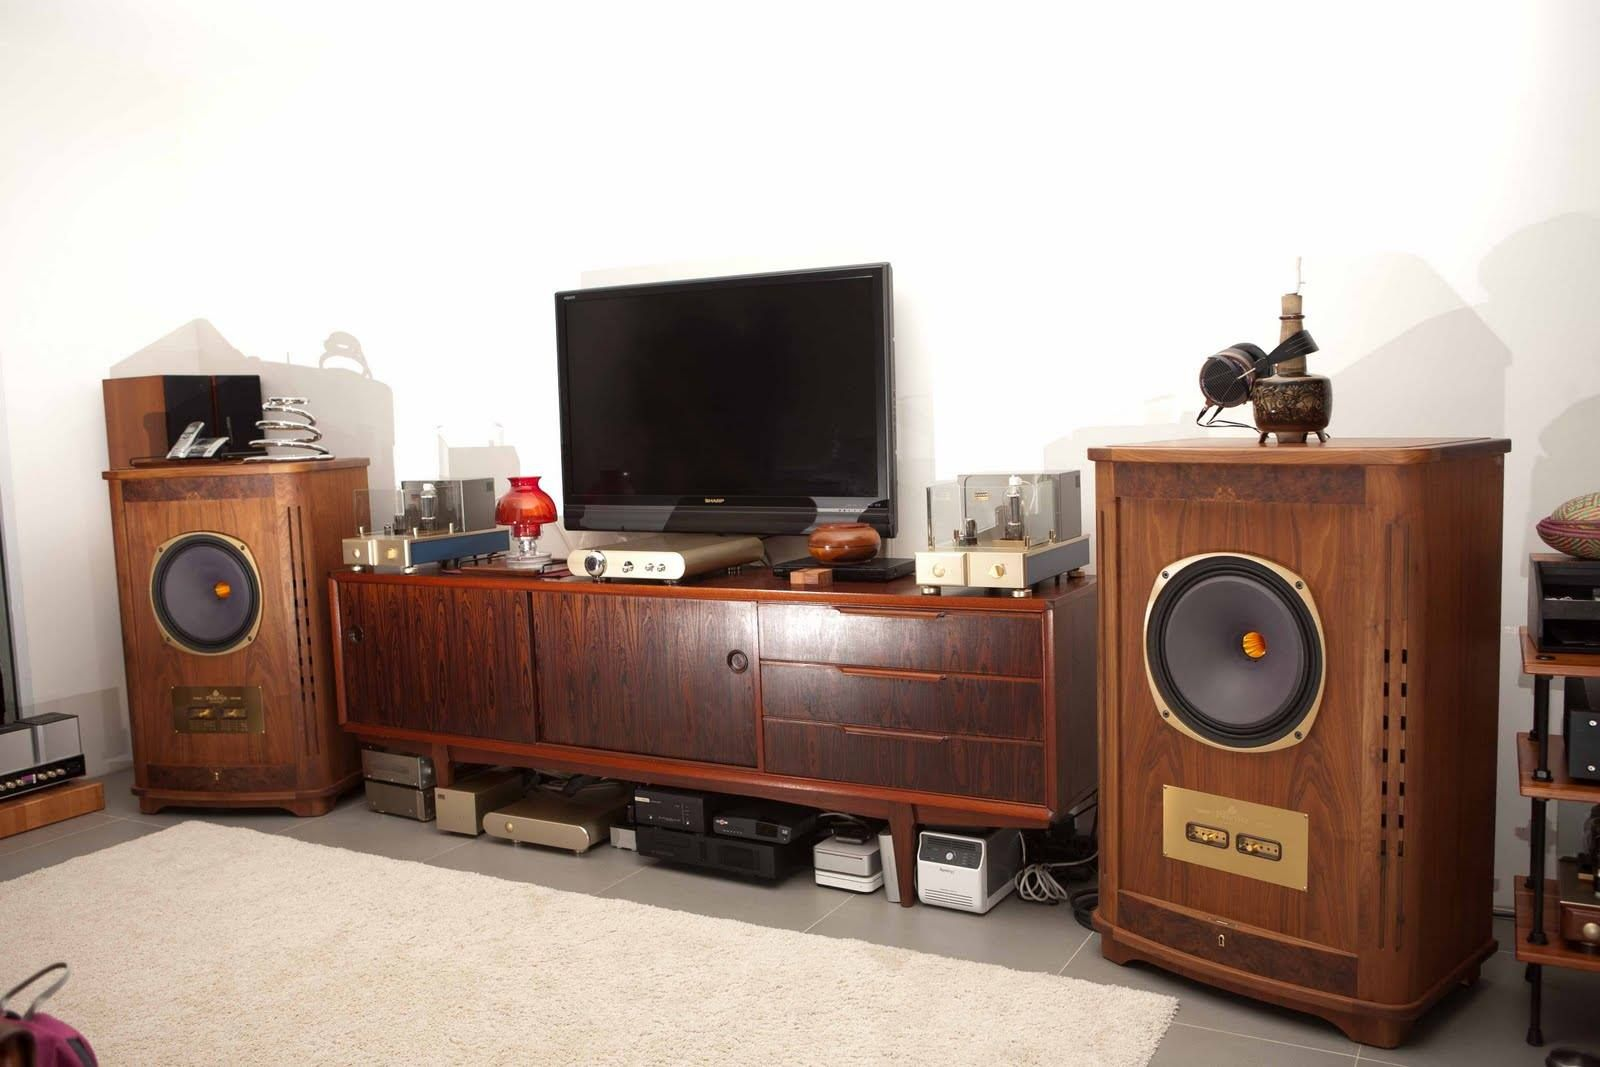 High End Audio For The Passionates​ Beautiful setup with the WAVAC PR-T1 preamplifier and MD-805 mono block amplifiers driving a pair of TANNOY Canterbury speakers.